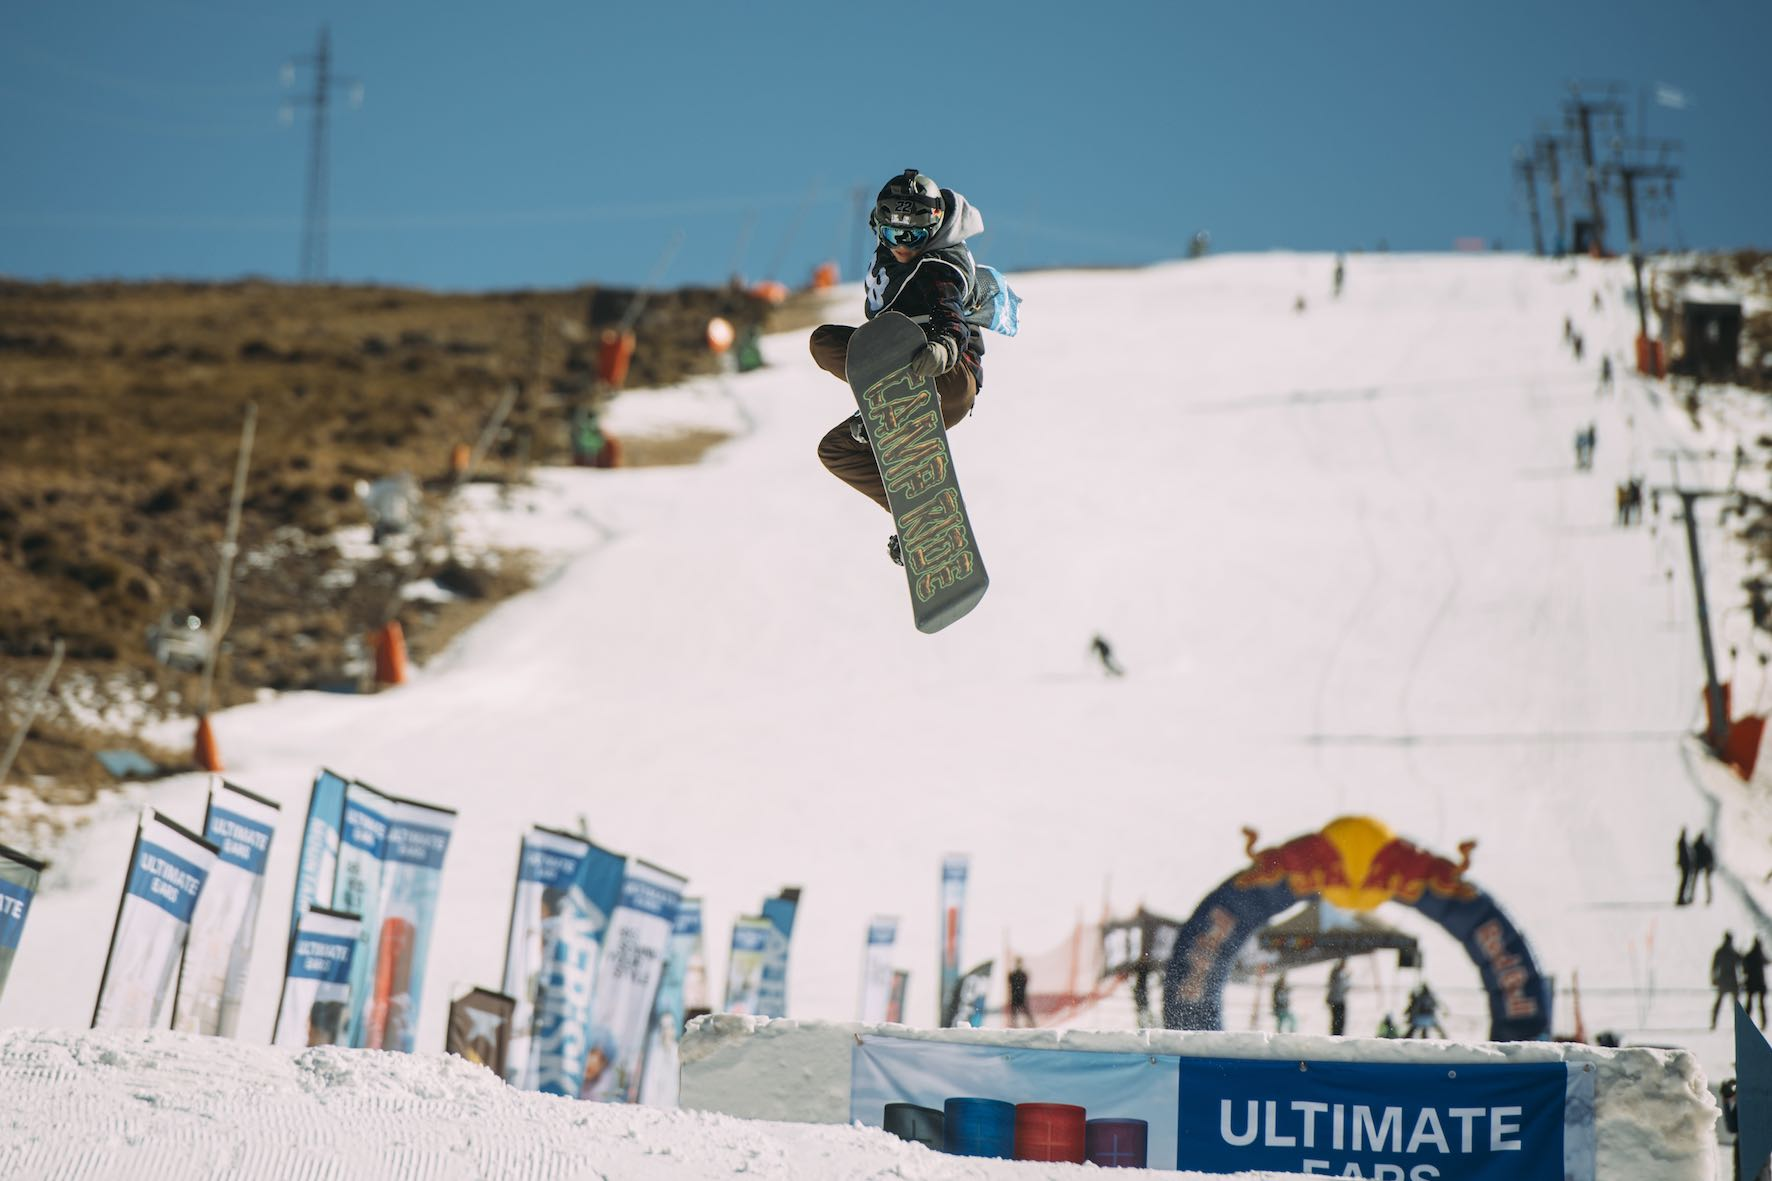 Kyle Benade snowboarding in the 2019 2019 Ultimate Ears Winter Whip Snowboard and Ski Festival